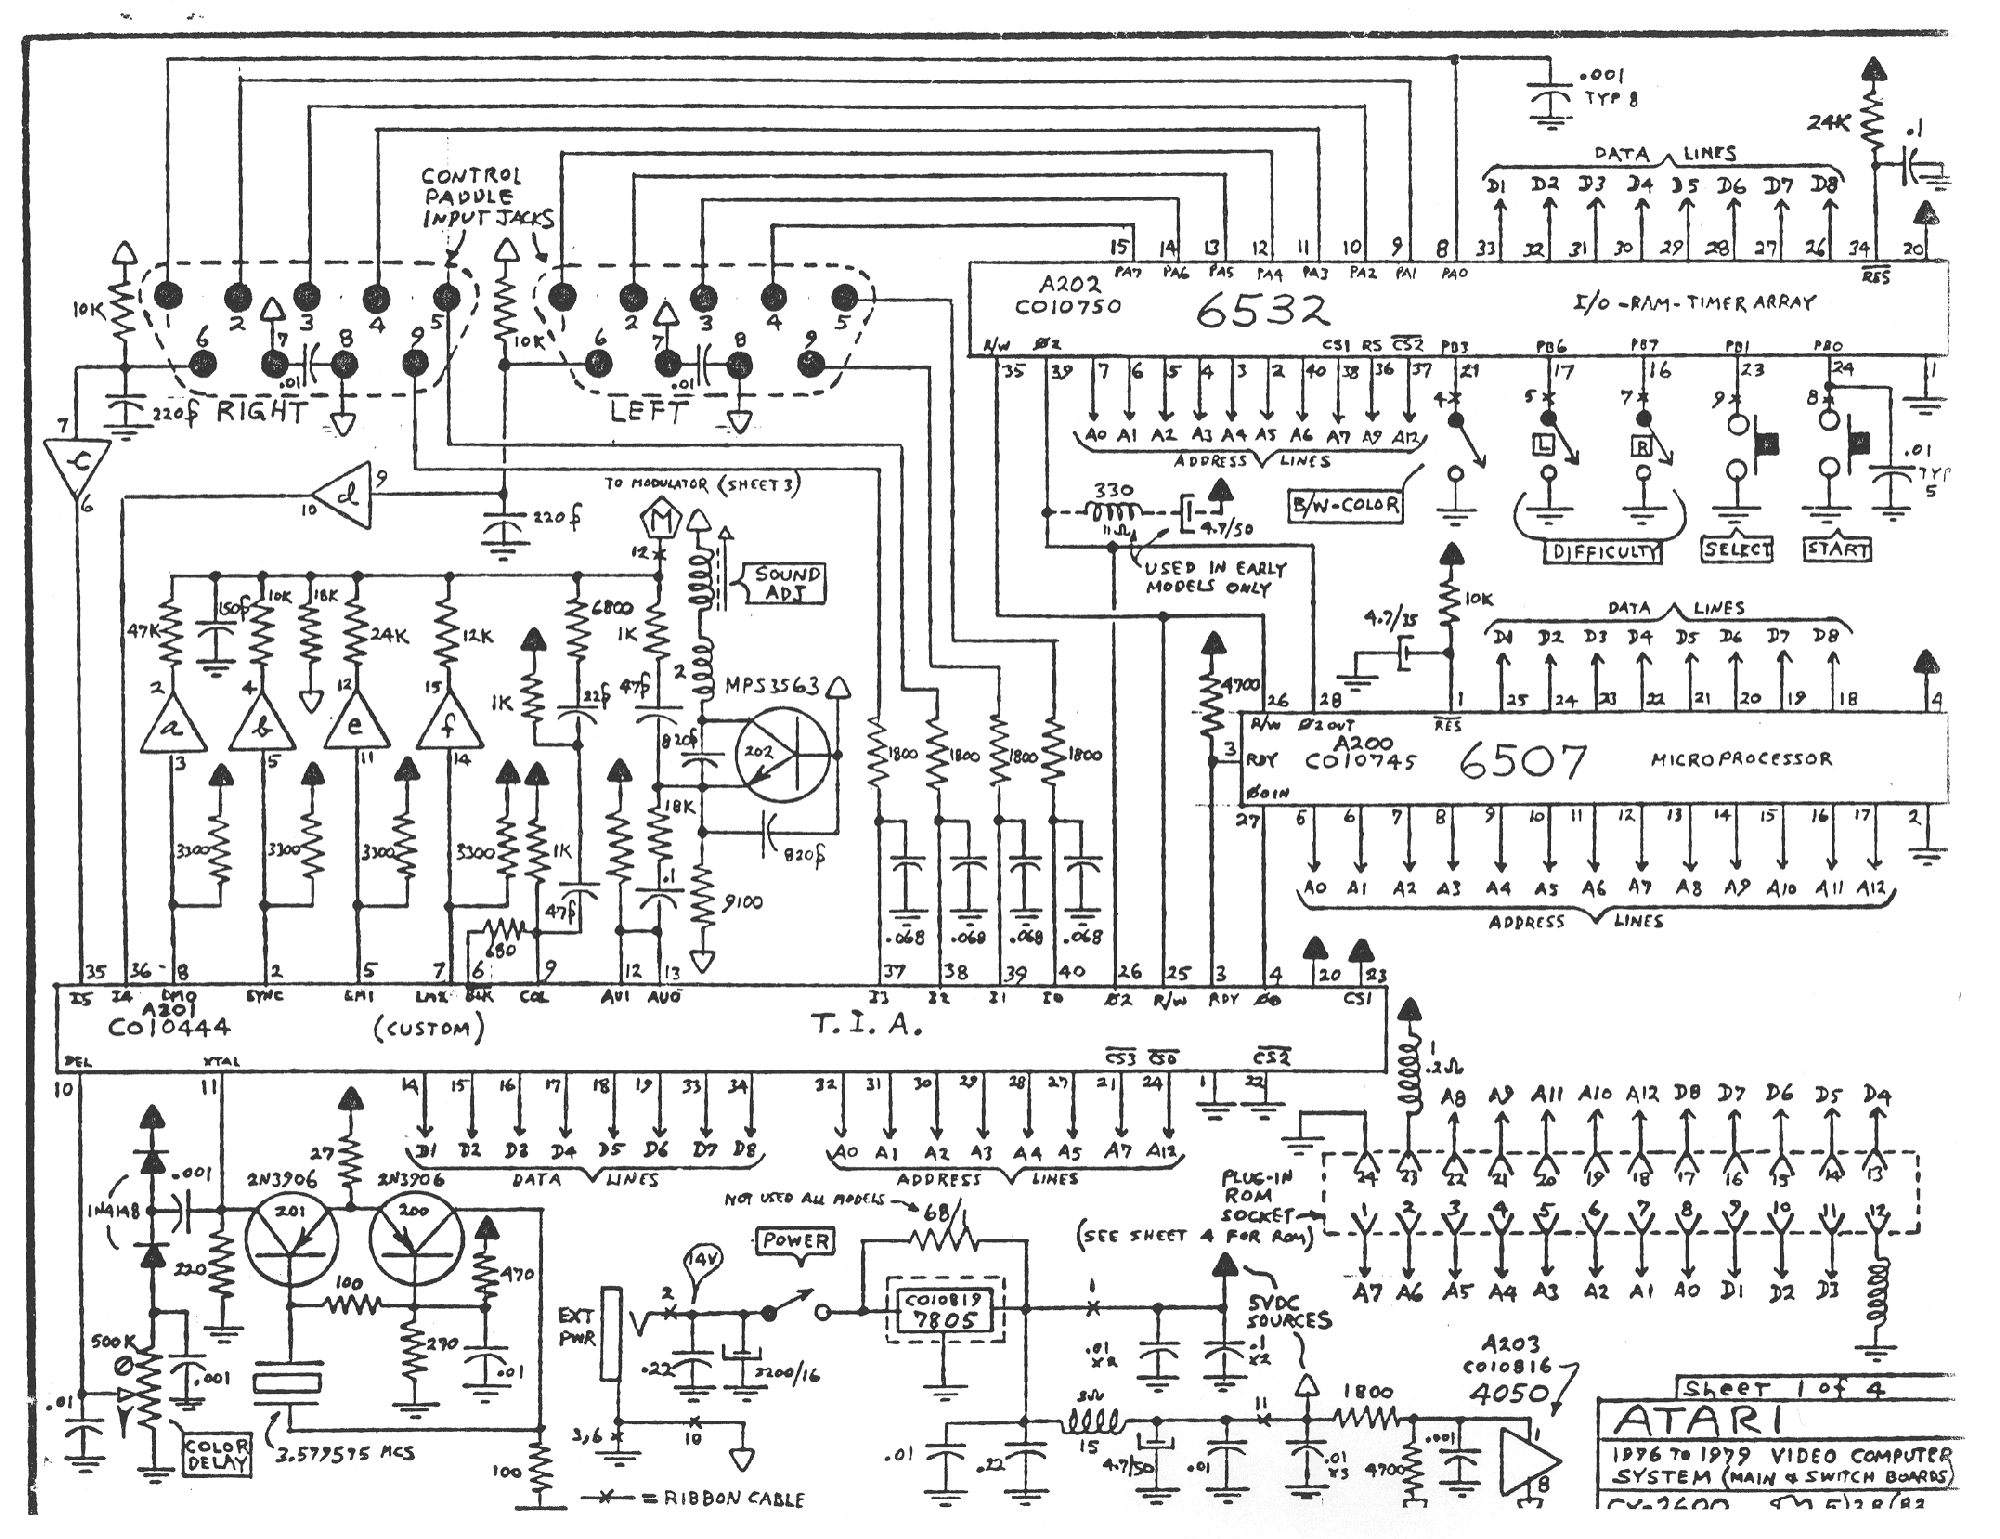 Atari Cx2600 Schematic